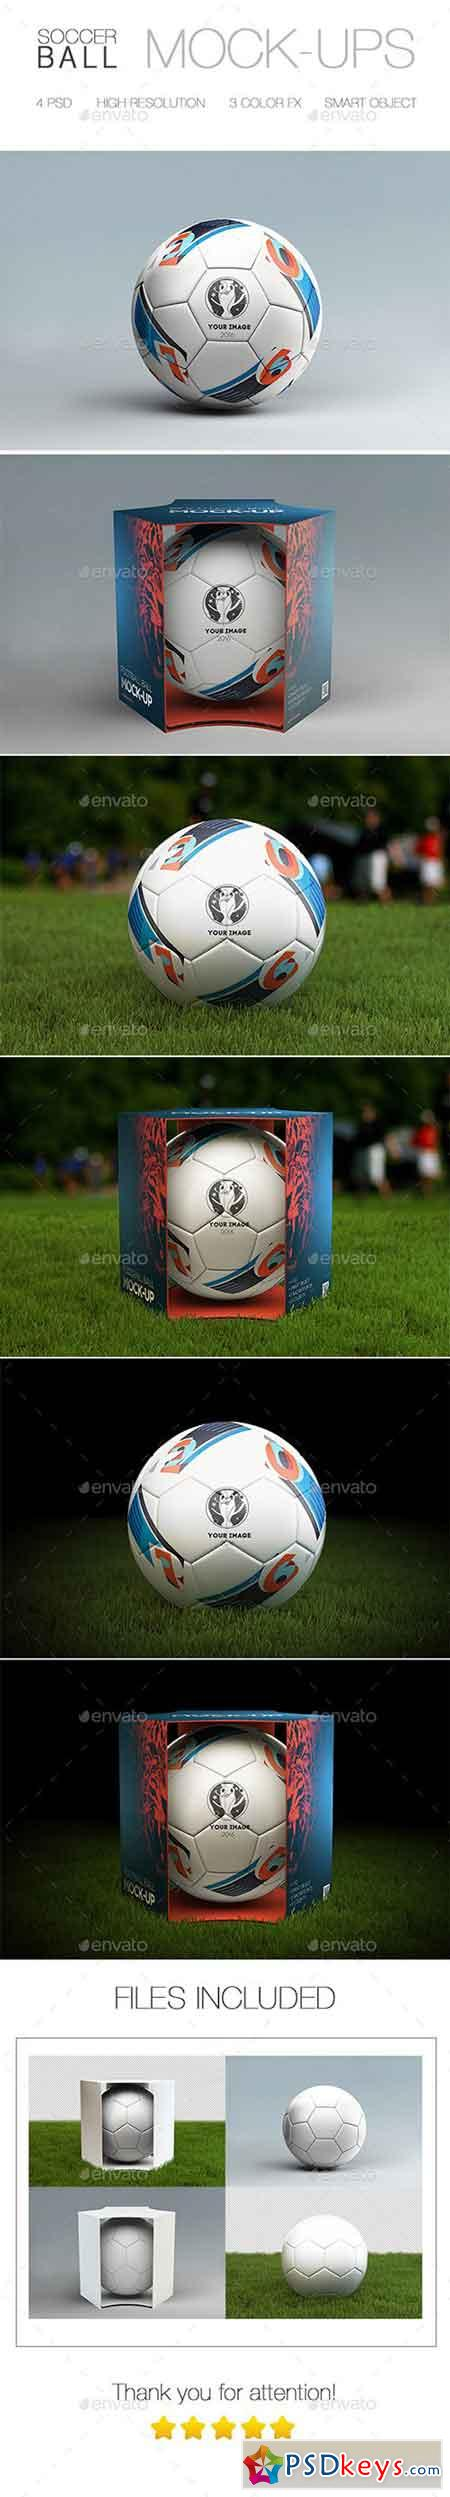 Soccer Ball Mock-Up 14884522